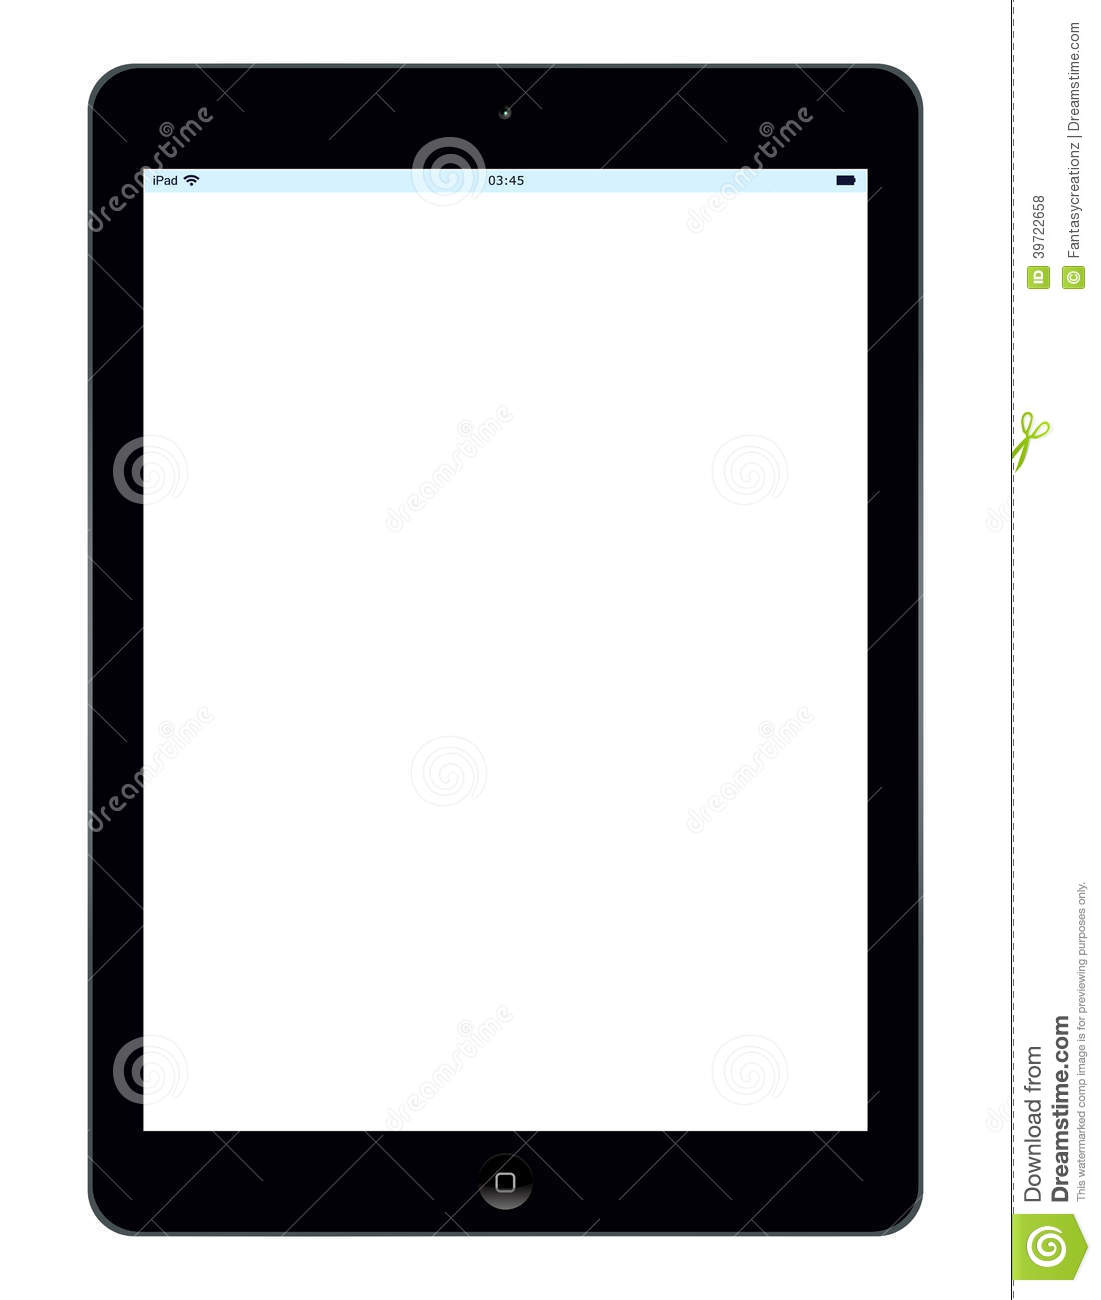 bought an ebook how to i download it on ipad